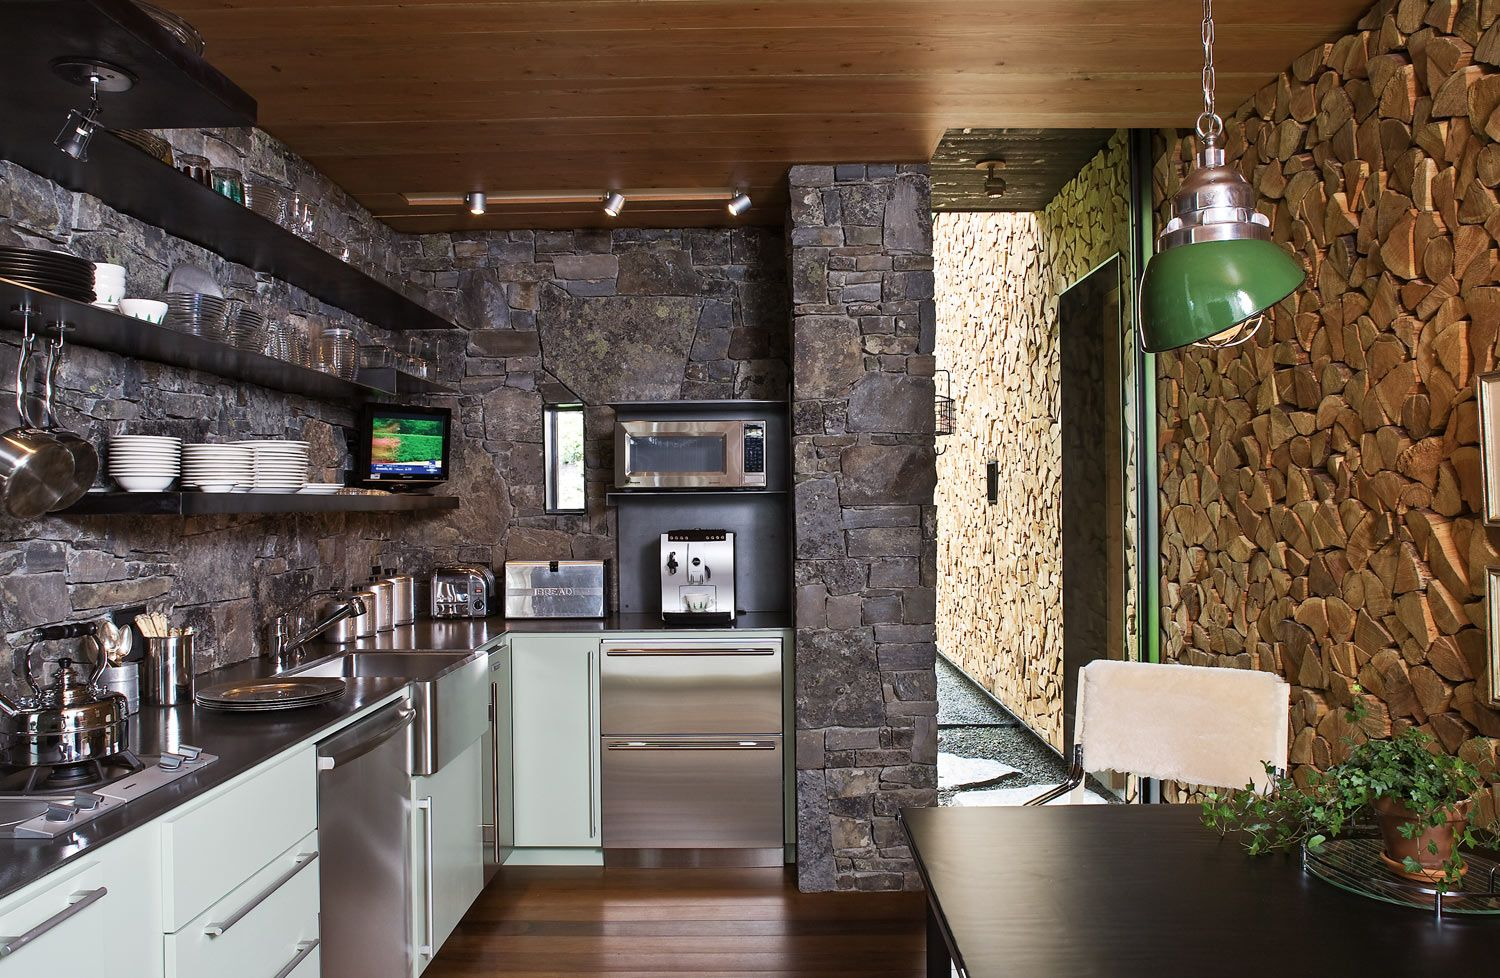 Brownish sirfaces of the walls at the stone trimmed country kitchen